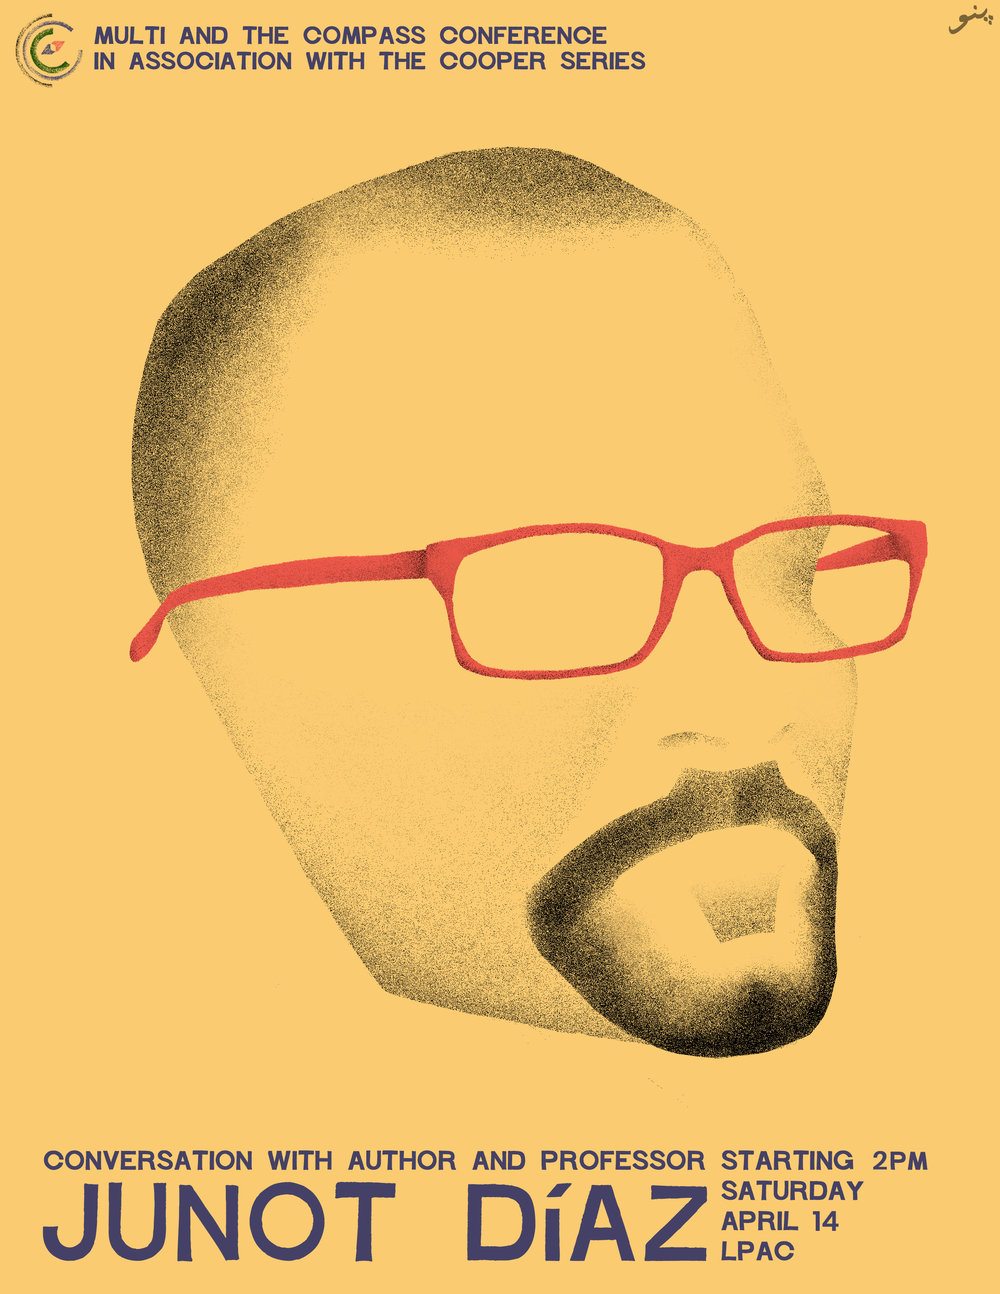 **Note: Junot Diaz will now be starting at  3:30pm